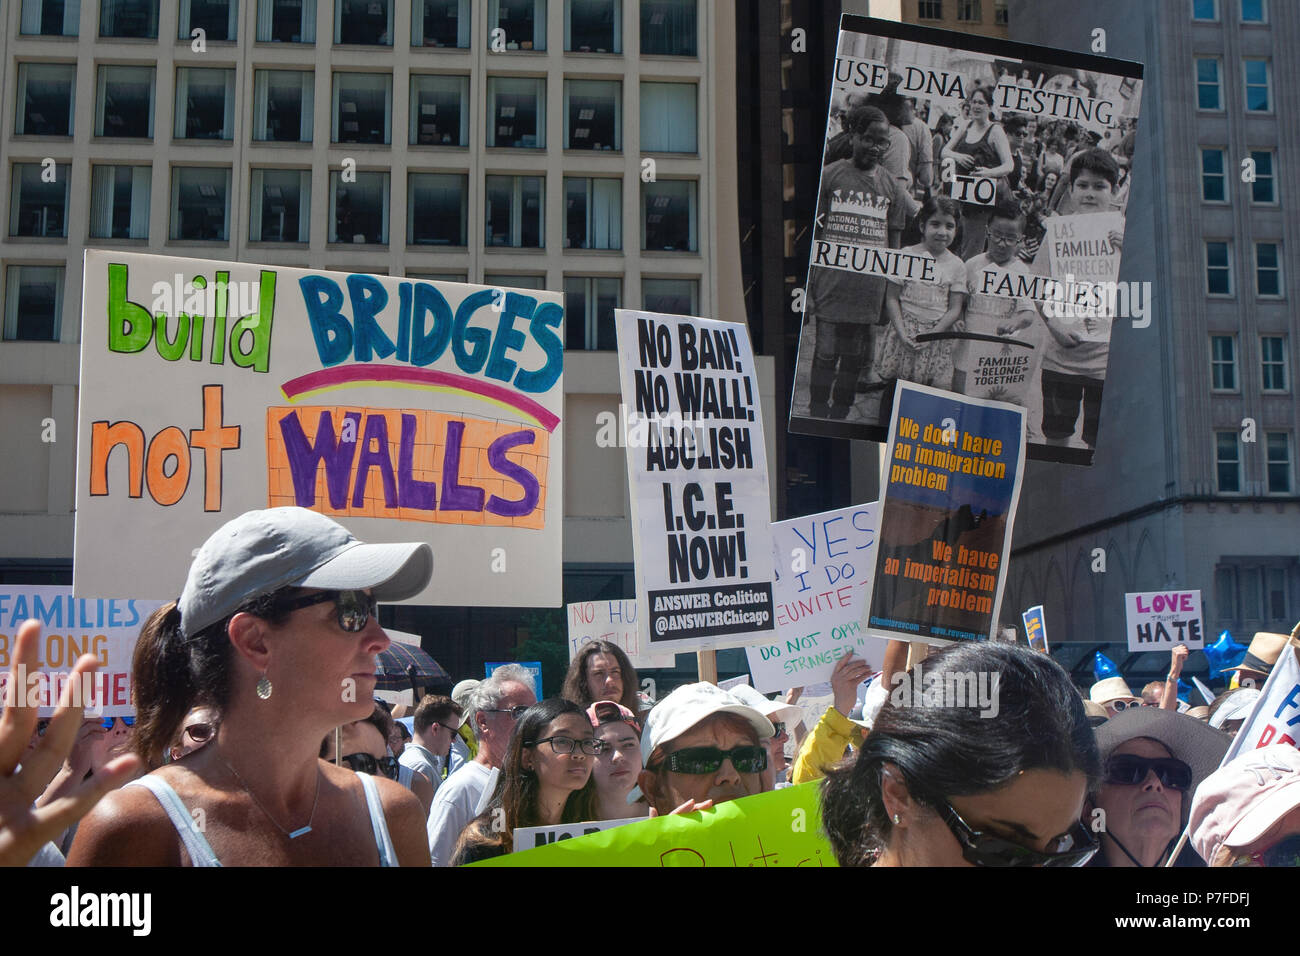 CHICAGO, ILLINOIS USA - JUNE 30, 2018: Demonstrators at the Families Belong Together rally protest the plight of separated migrant children. - Stock Image